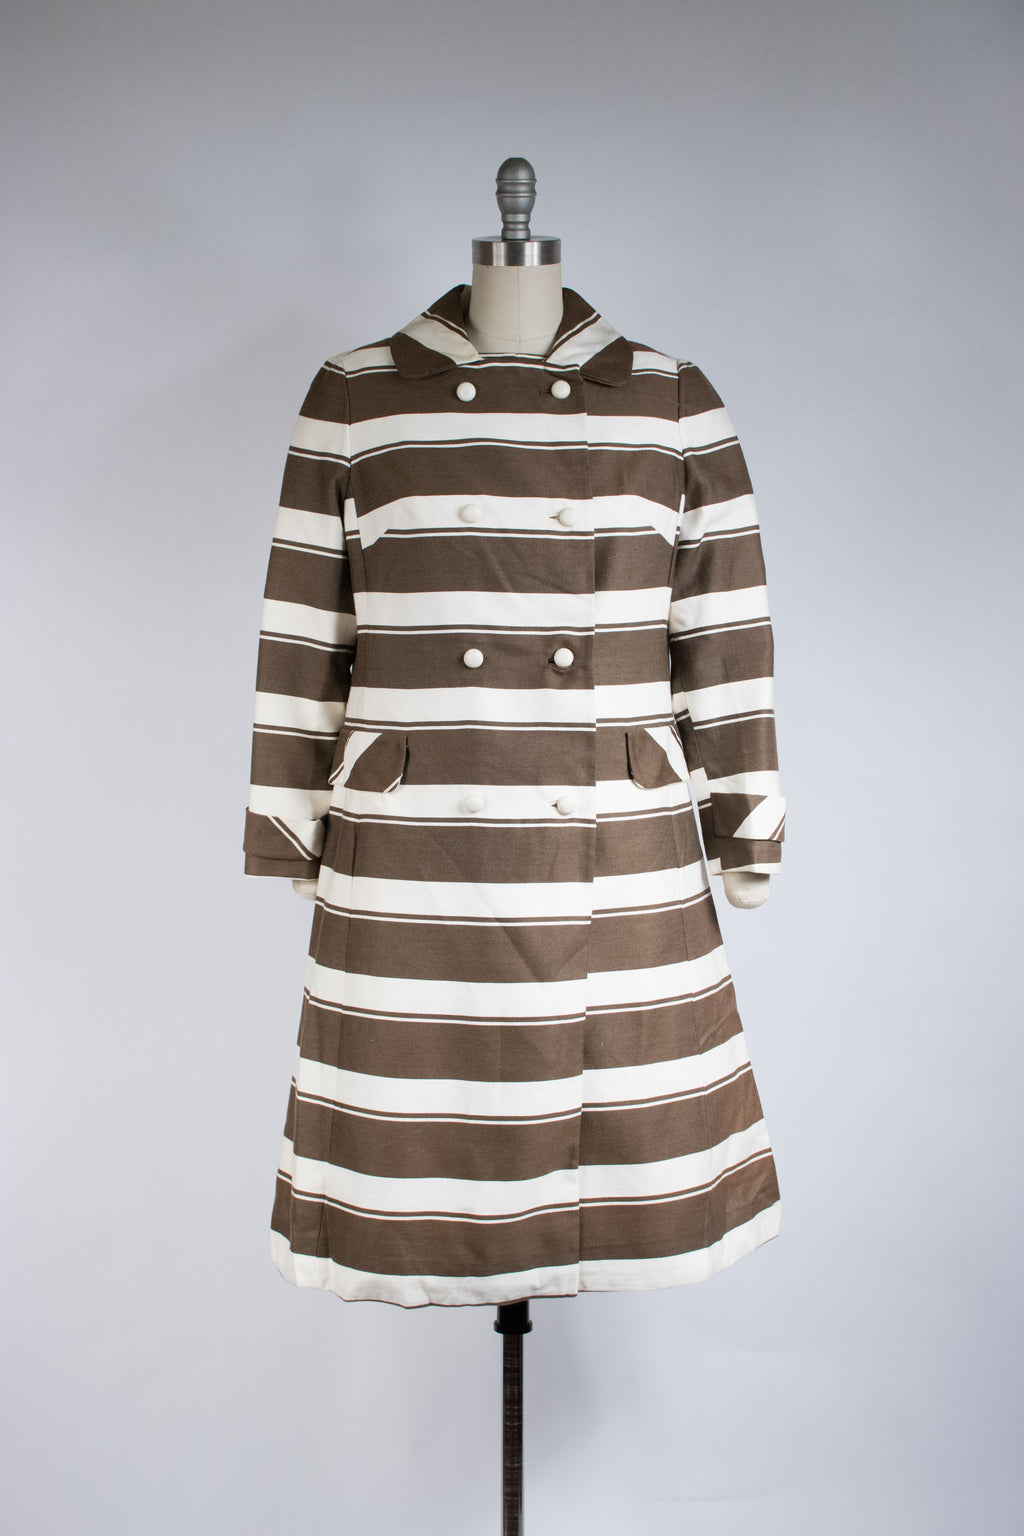 Crisp 1960s Two Piece Mod Dress Set in Chocolate Brown and Ivory Stripes